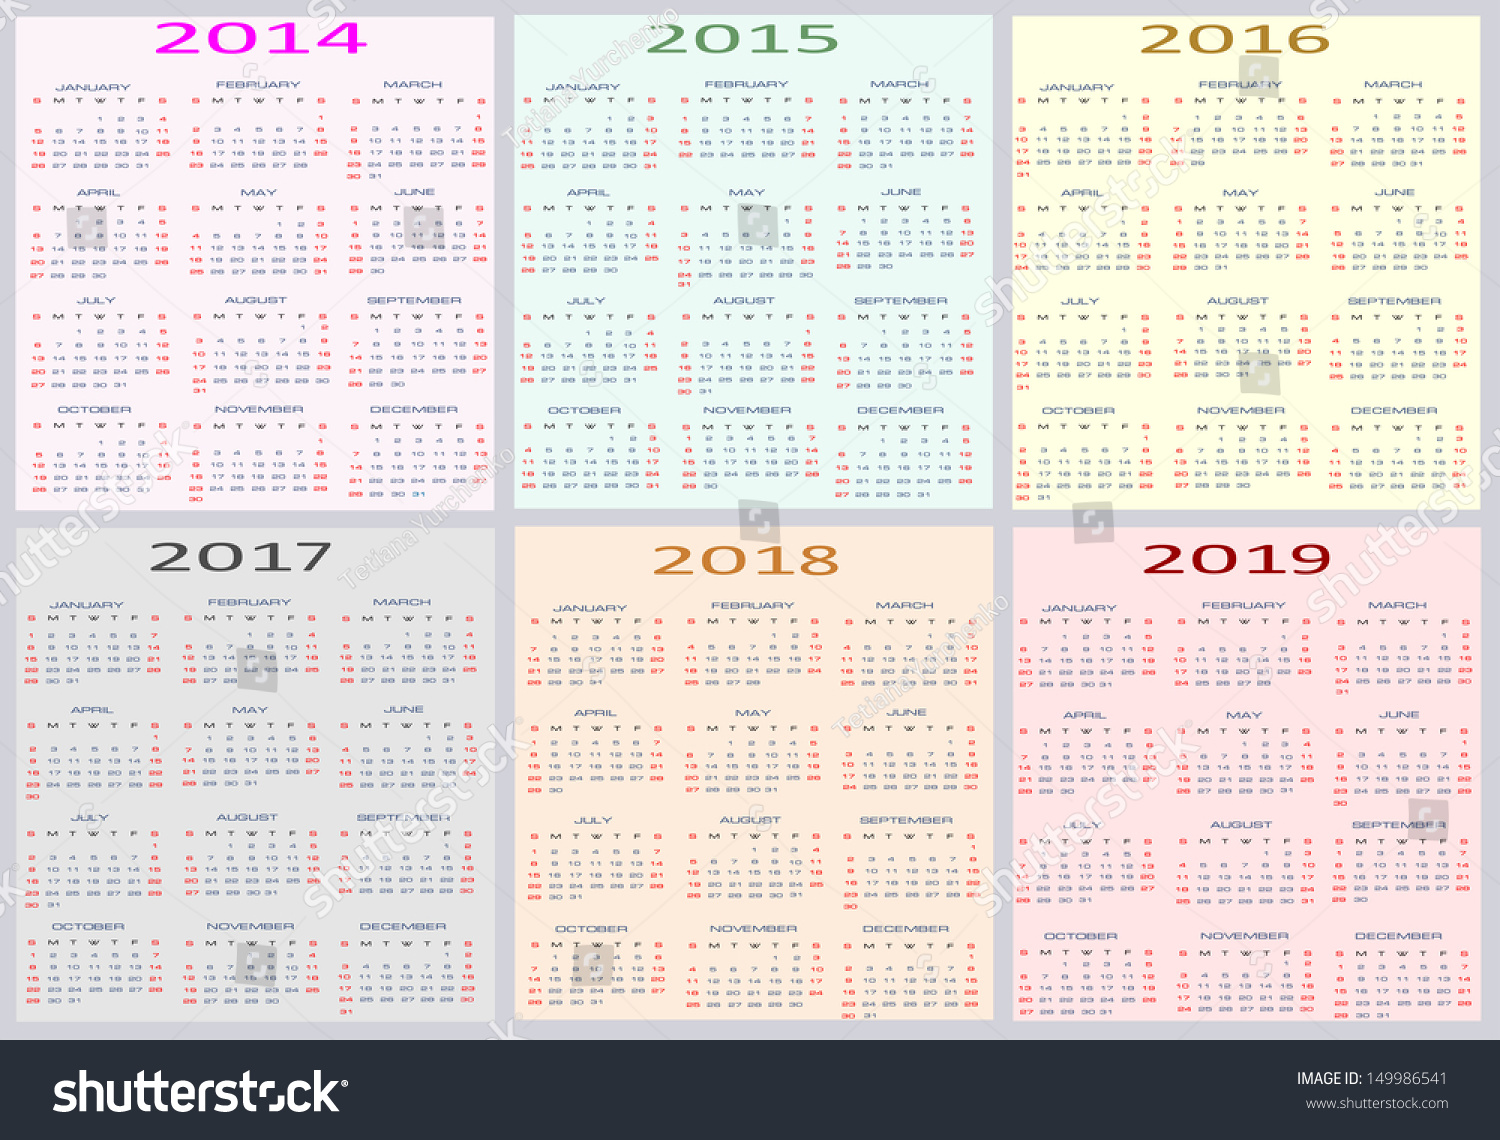 colorful calendar for years 2014